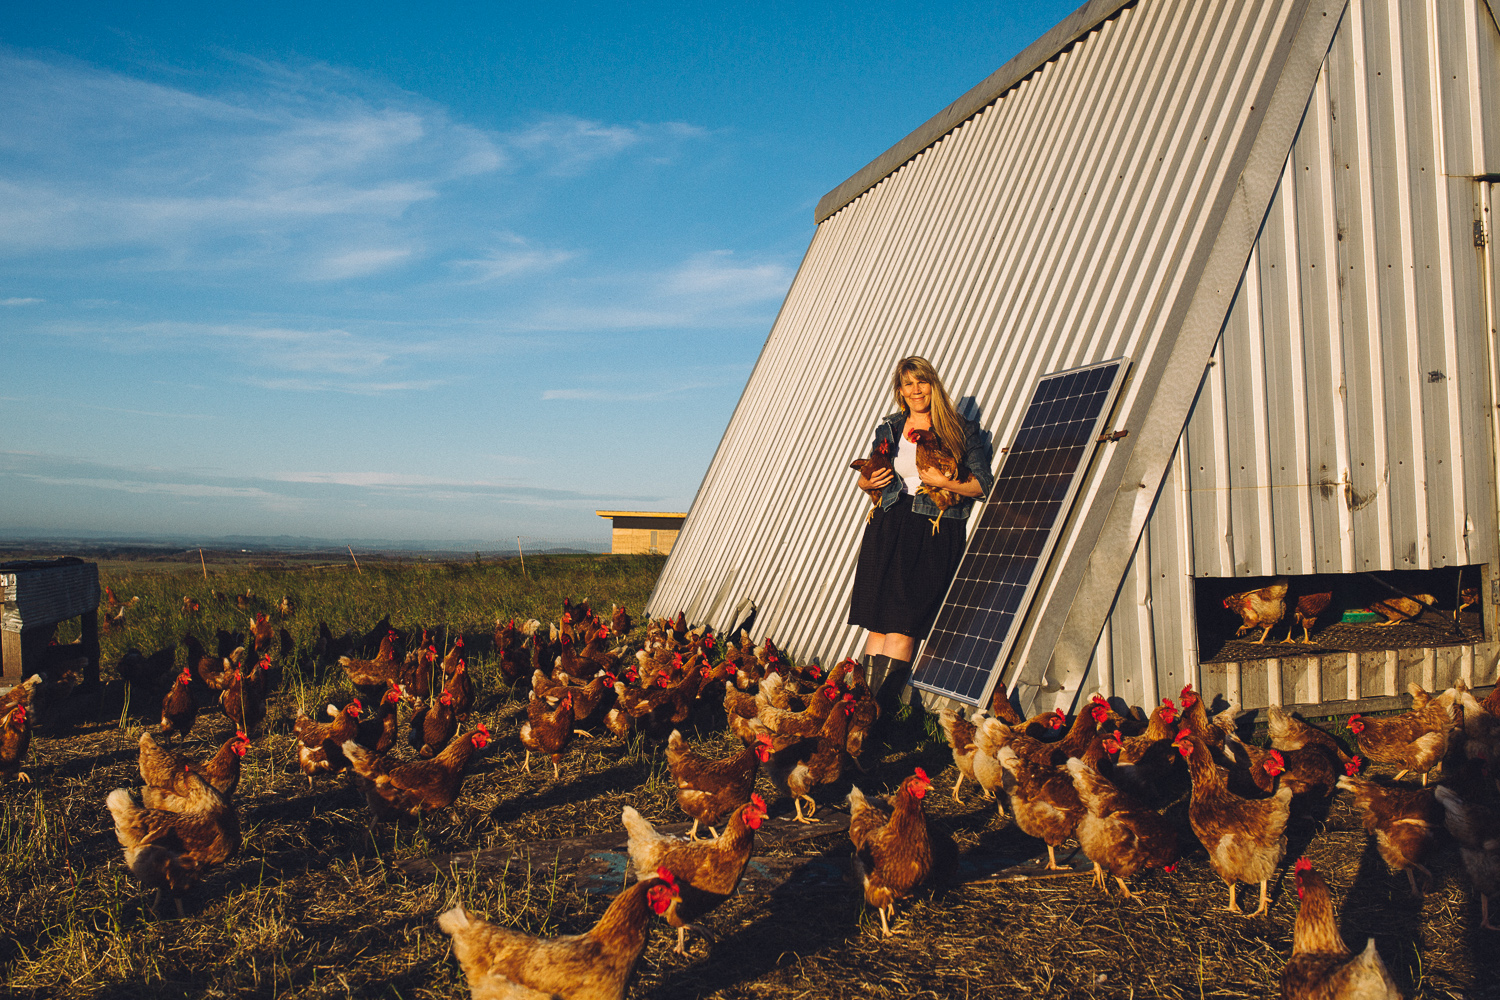 An image taken for the Invisible Farmer Project depicting farmer Amy Paul, Walkerville, South Gippsland, 2016, Source: Museums Victoria, Photographer: Catherine Forge